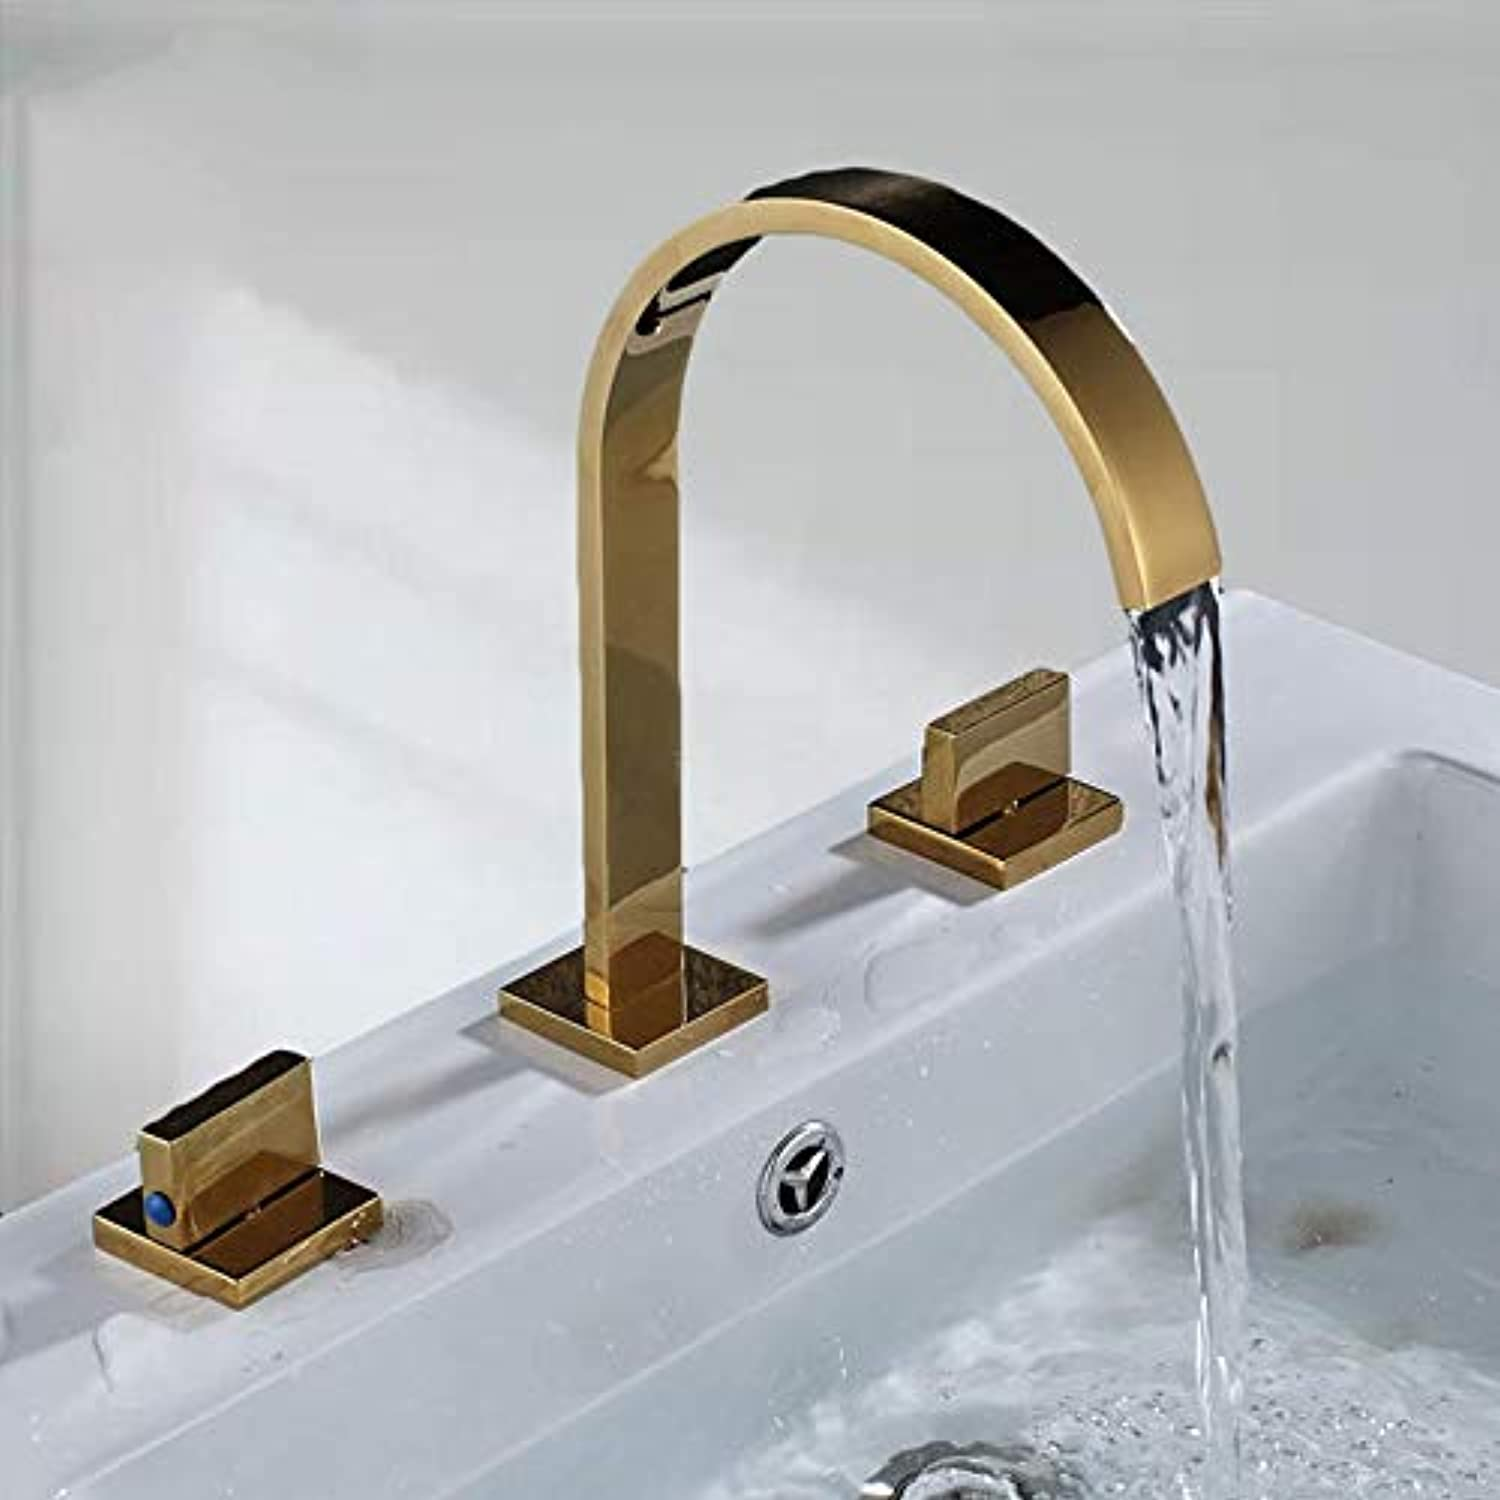 Gcbpwh tap Bathroom Basin Faucet Hot and Cold Water Faucet Three Holes Two Handle Mixers Tap